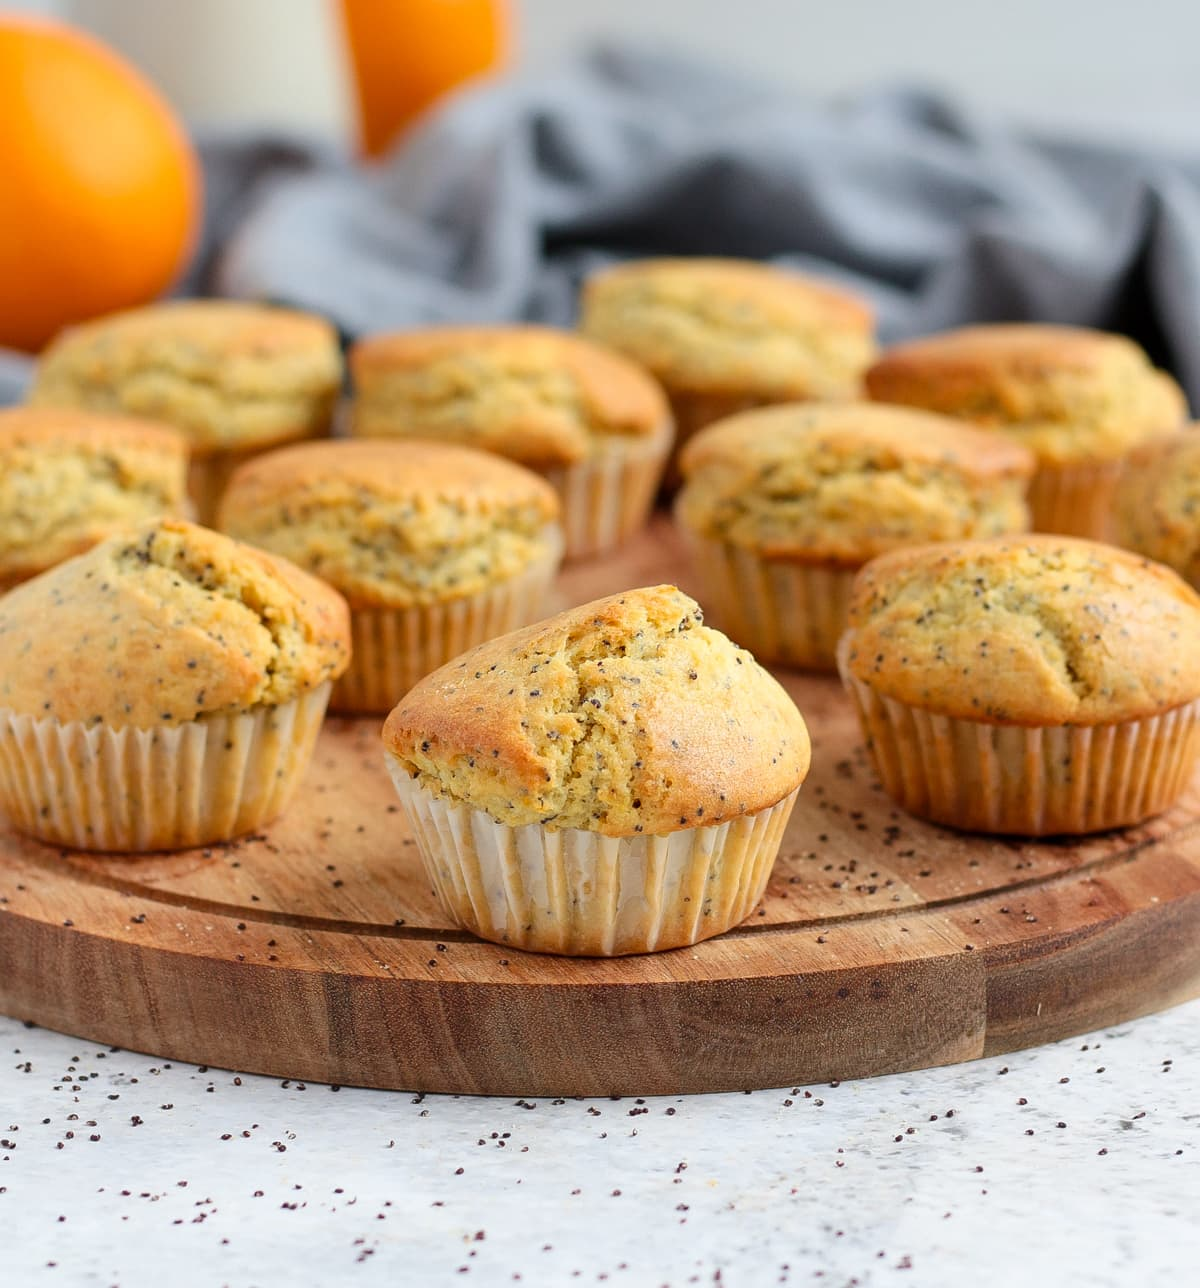 Baked muffins placed over a round wooden board.